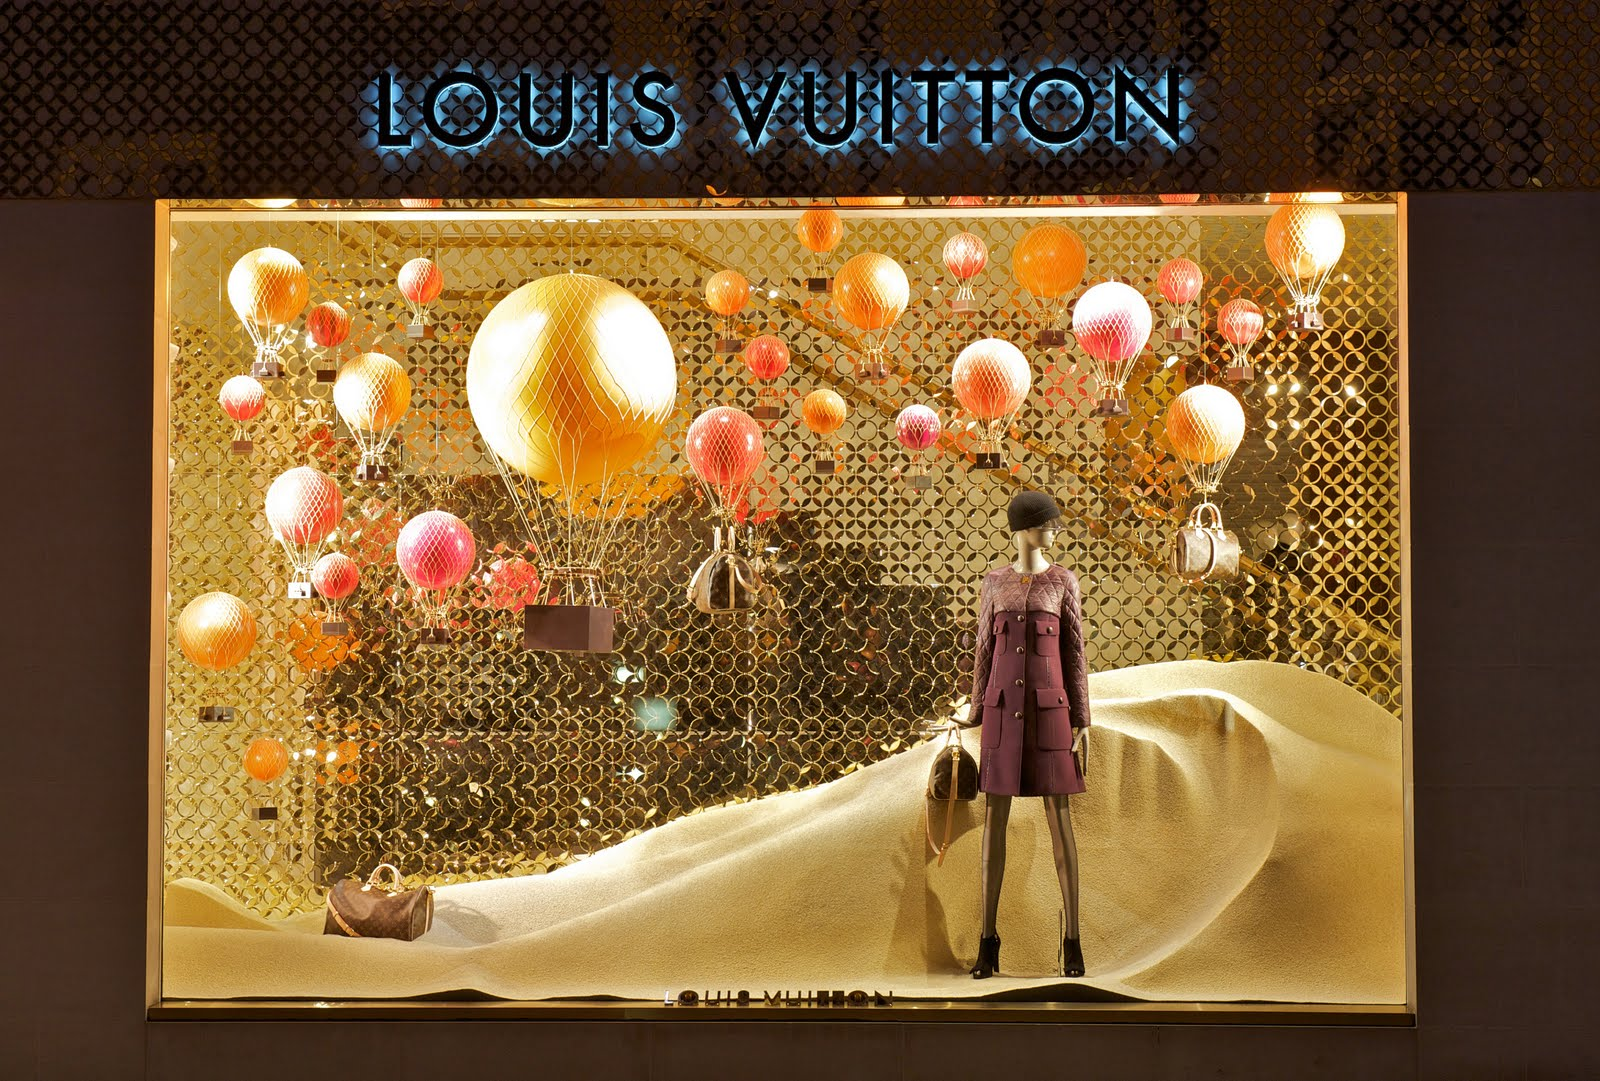 fake louis vuitton handbags dubai